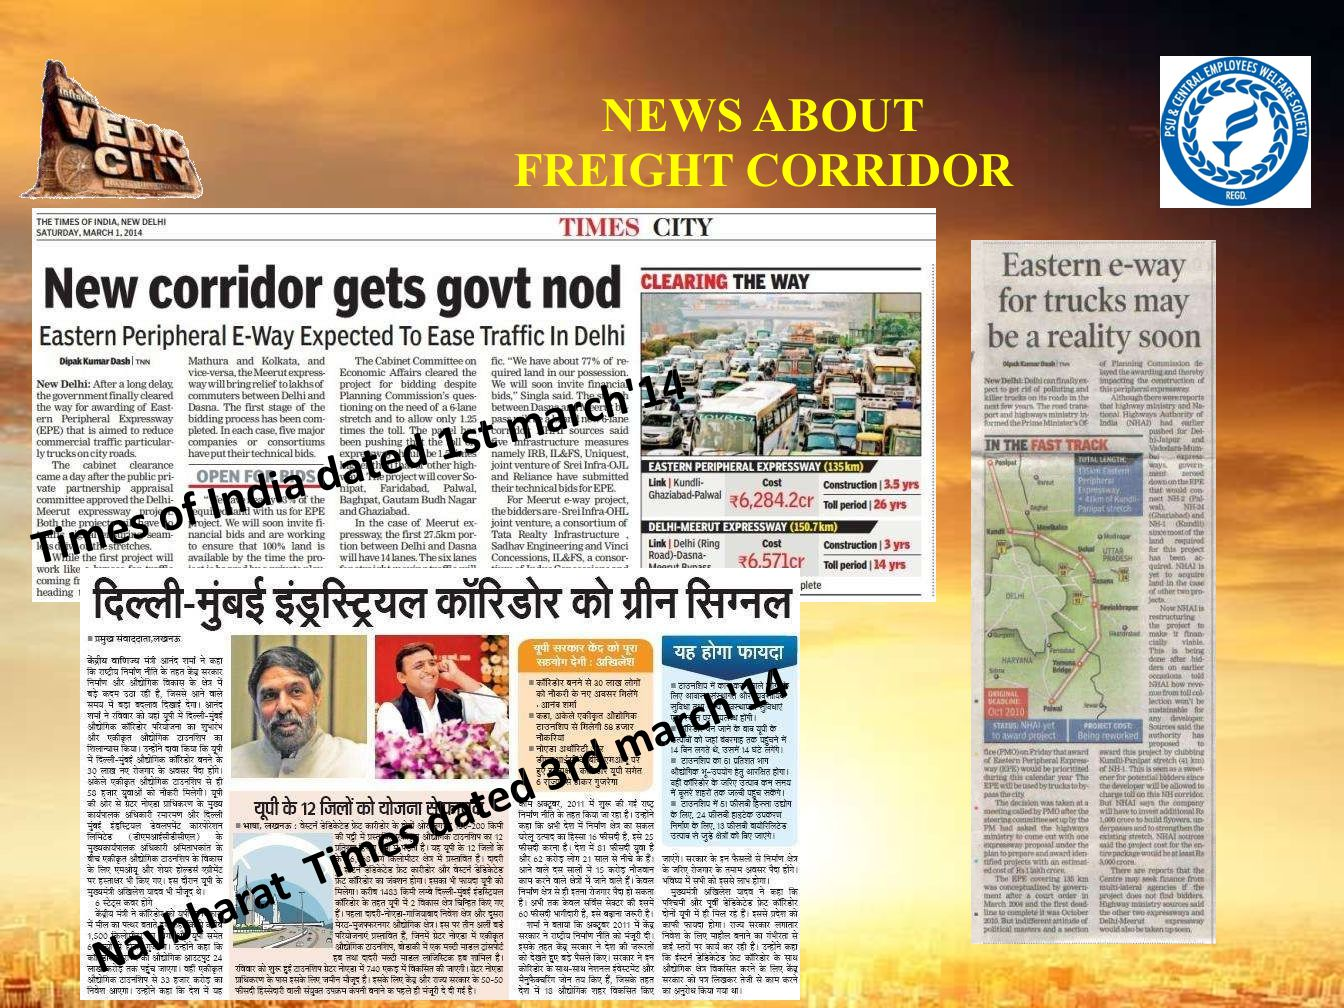 NEWS ABOUT FREIGHT CORRIDOR